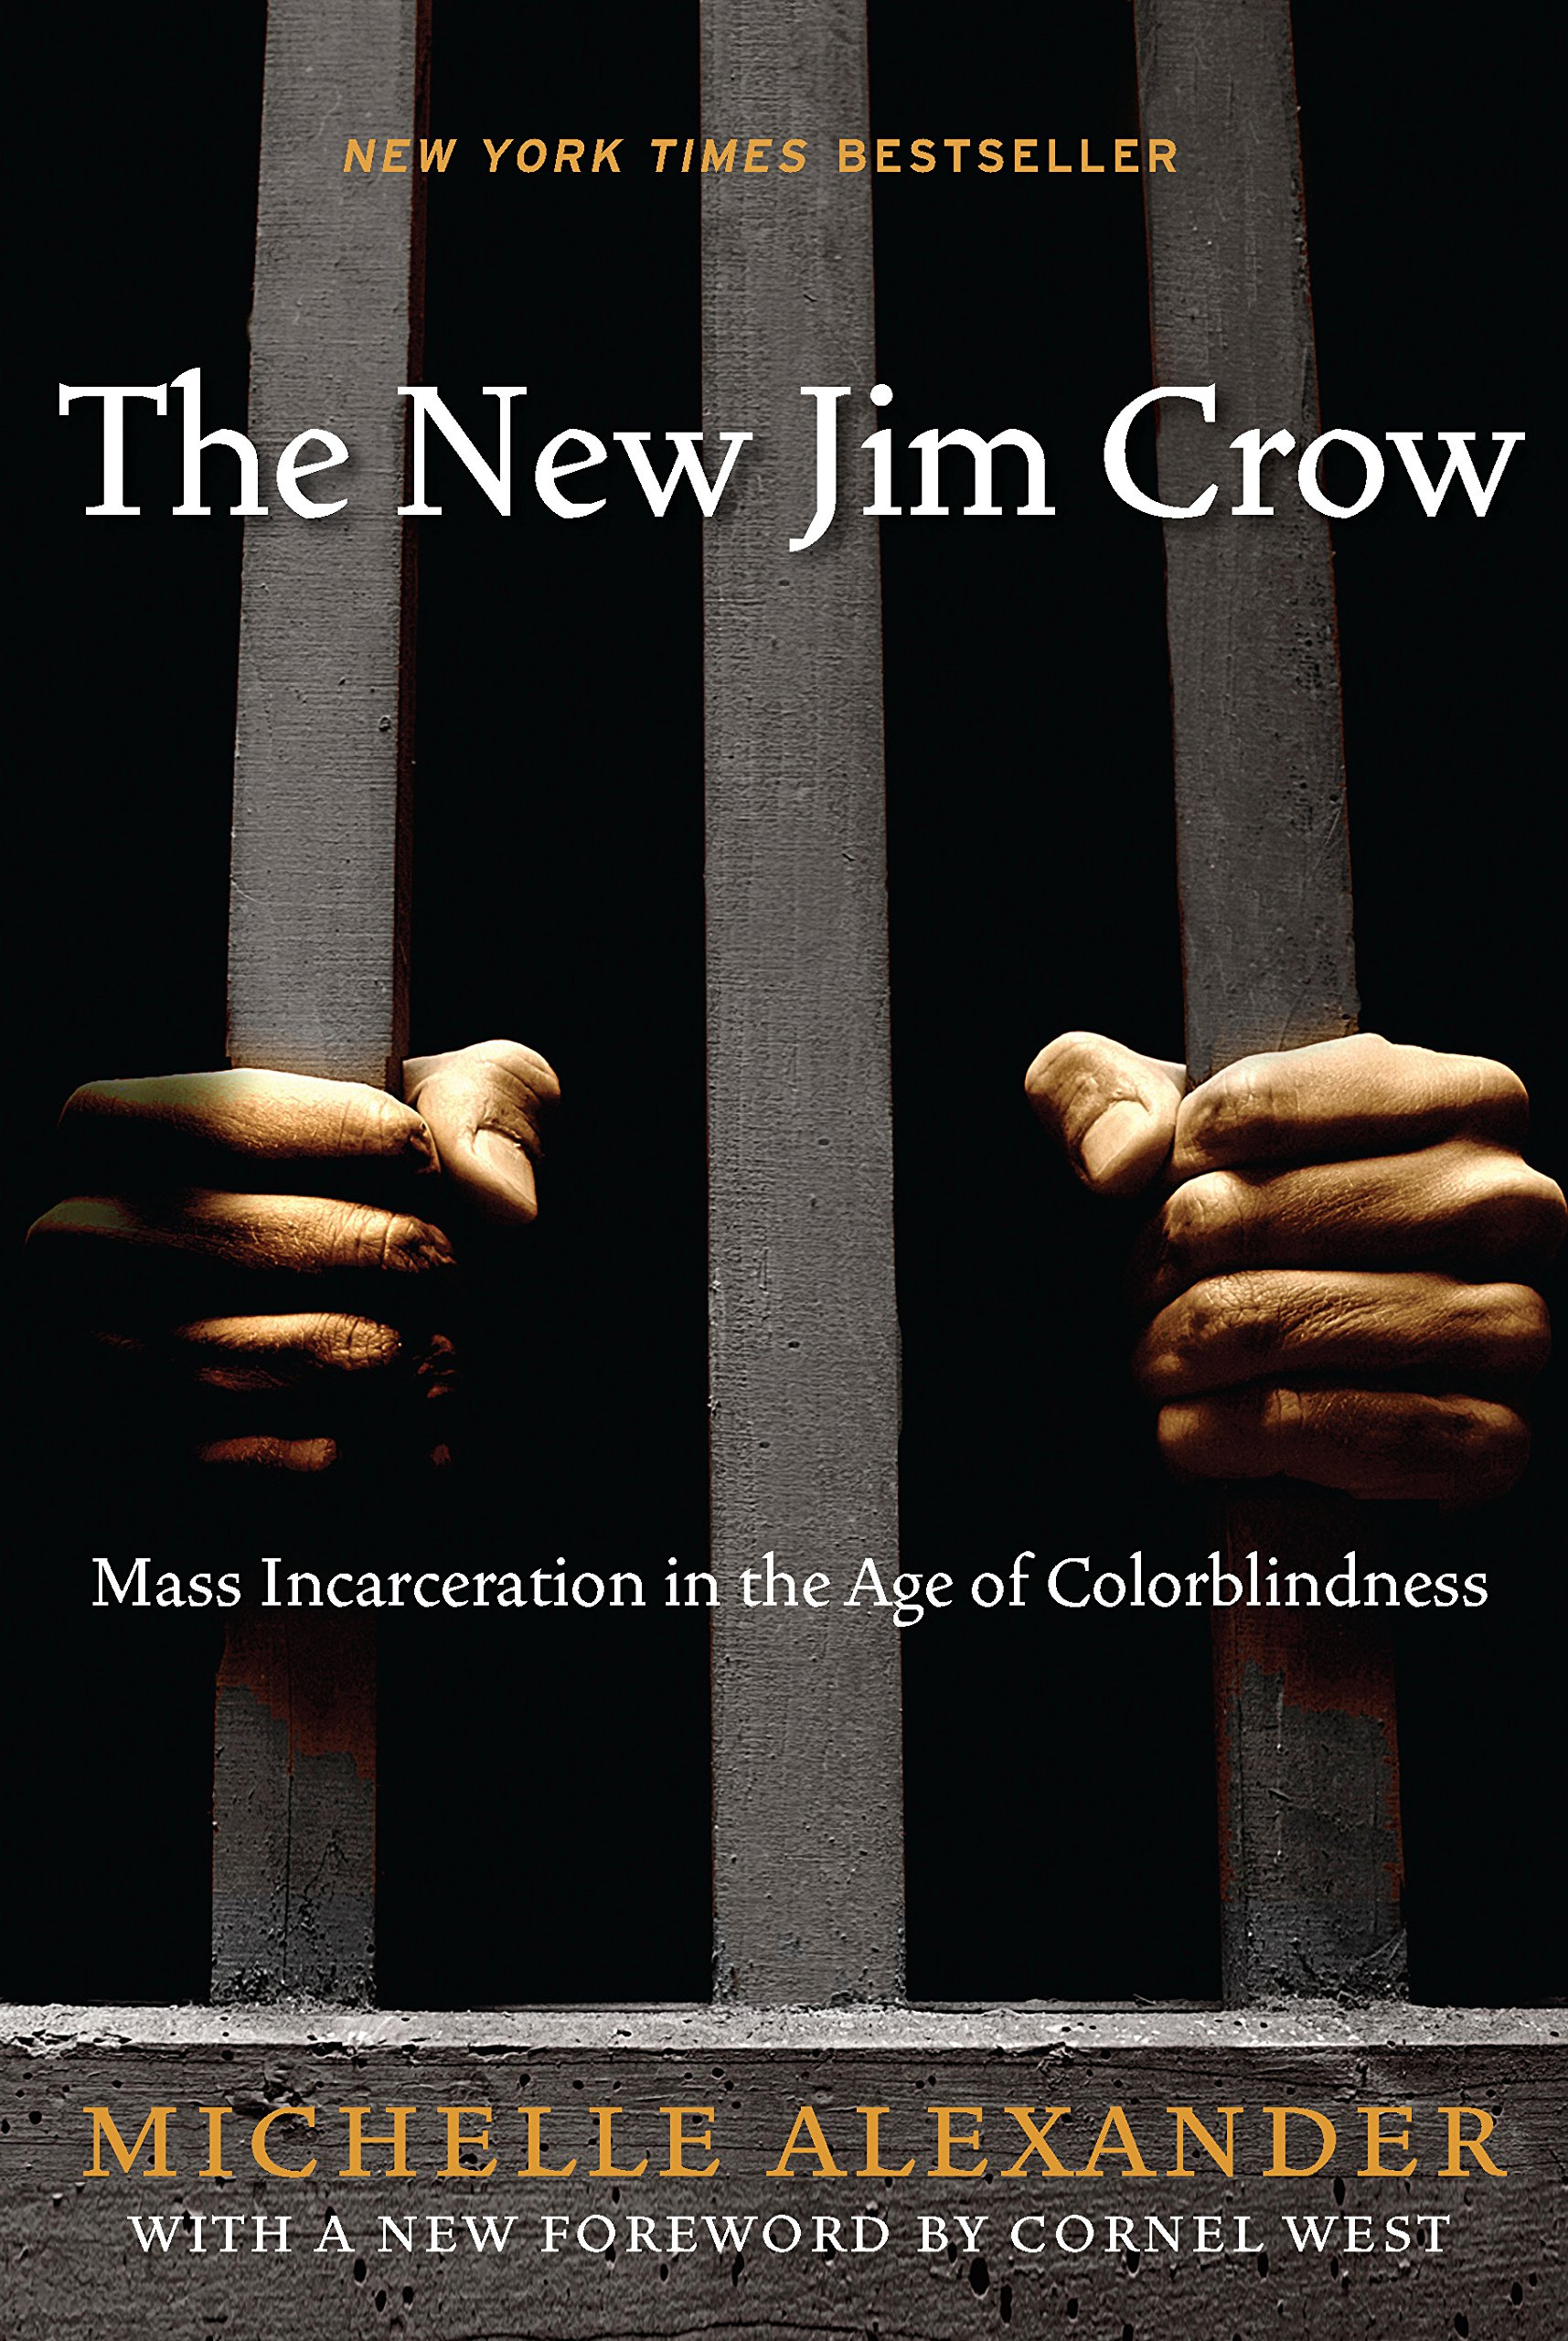 Why Did US Prisons Ban These Ten Books?